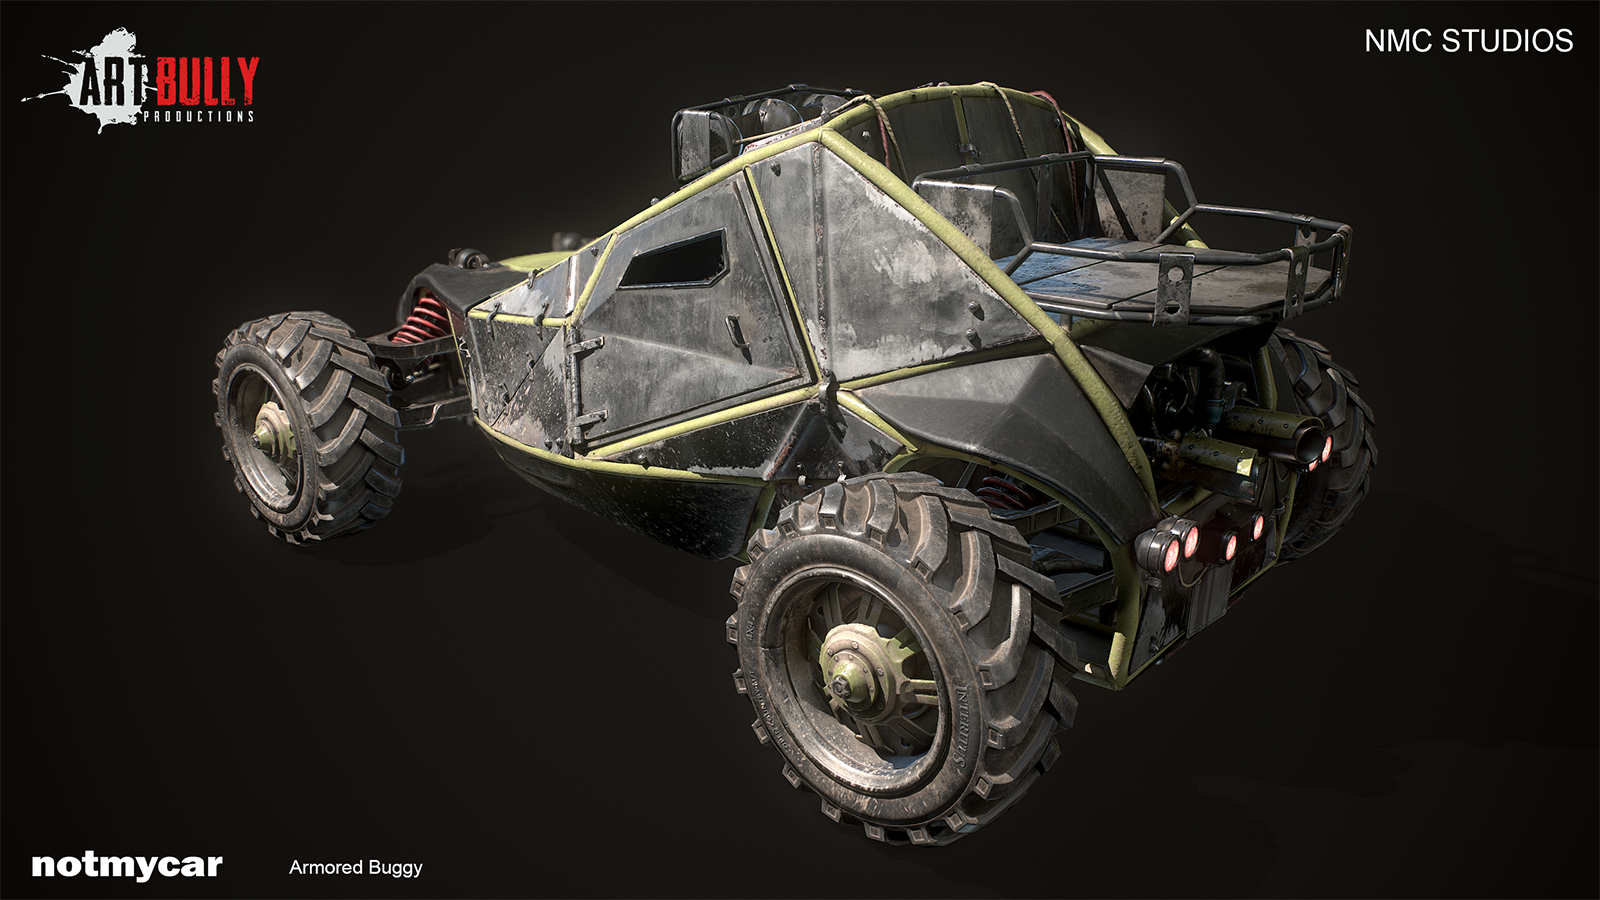 Artbully.co_NMC_Armored_Buggy_Back_Low.png